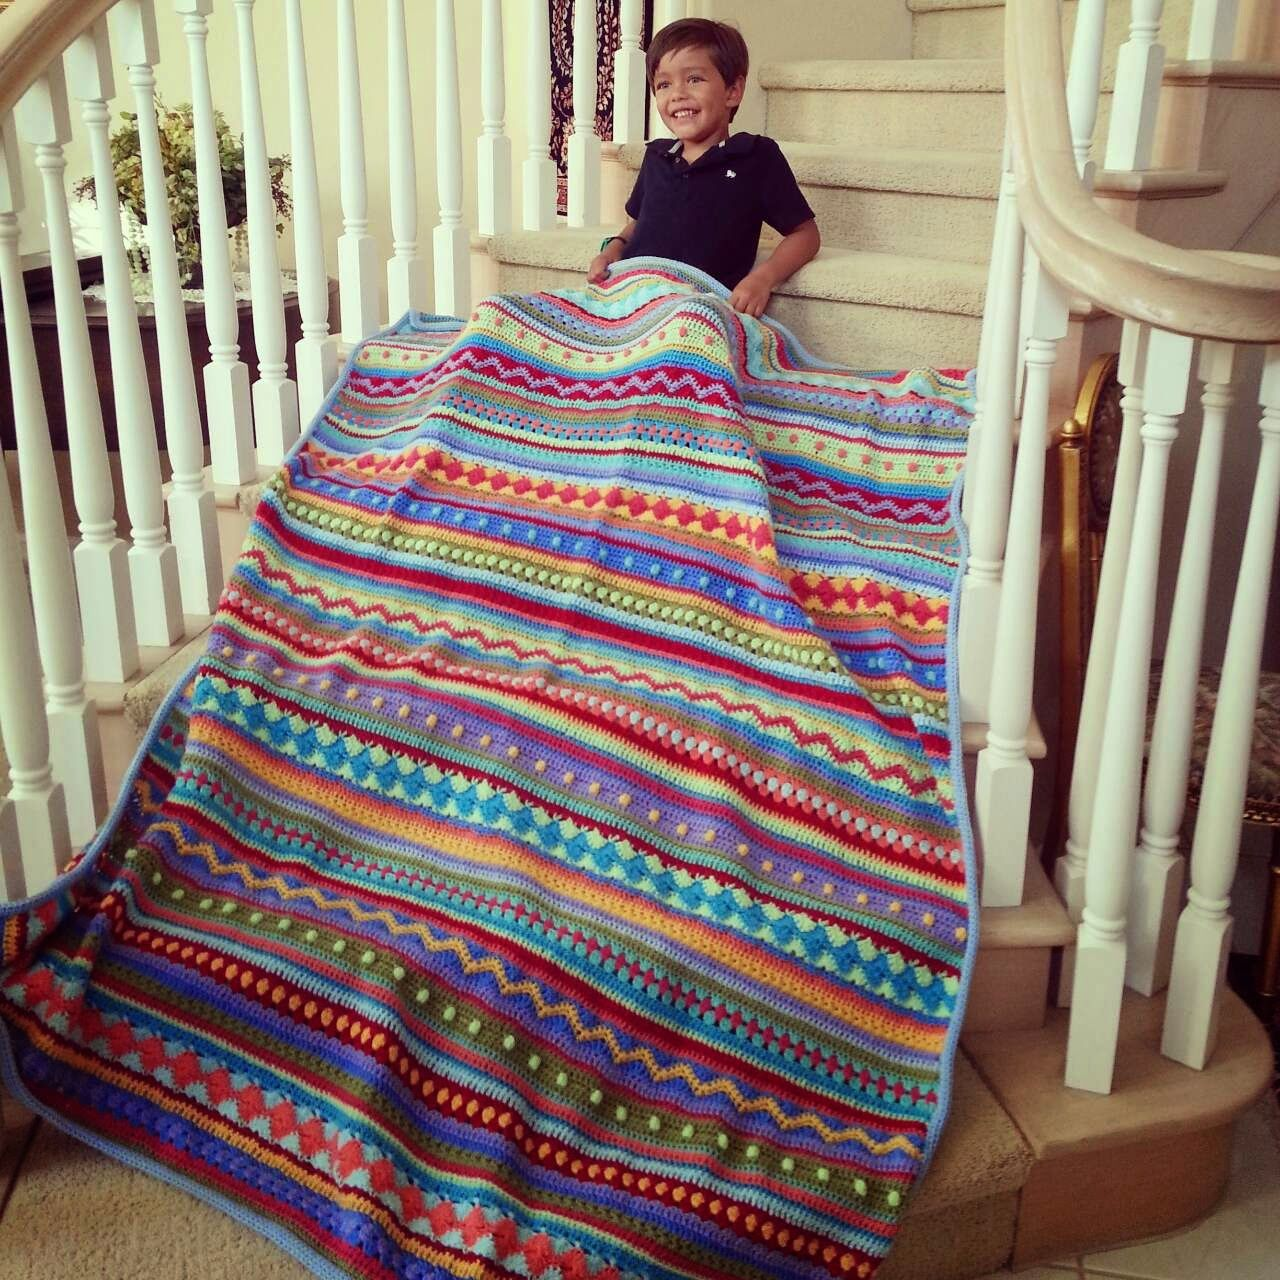 Crochet Along As We Go Stripey Blanket - Finished at Last! - blog has link to pattern, her work was too cute not to pin!